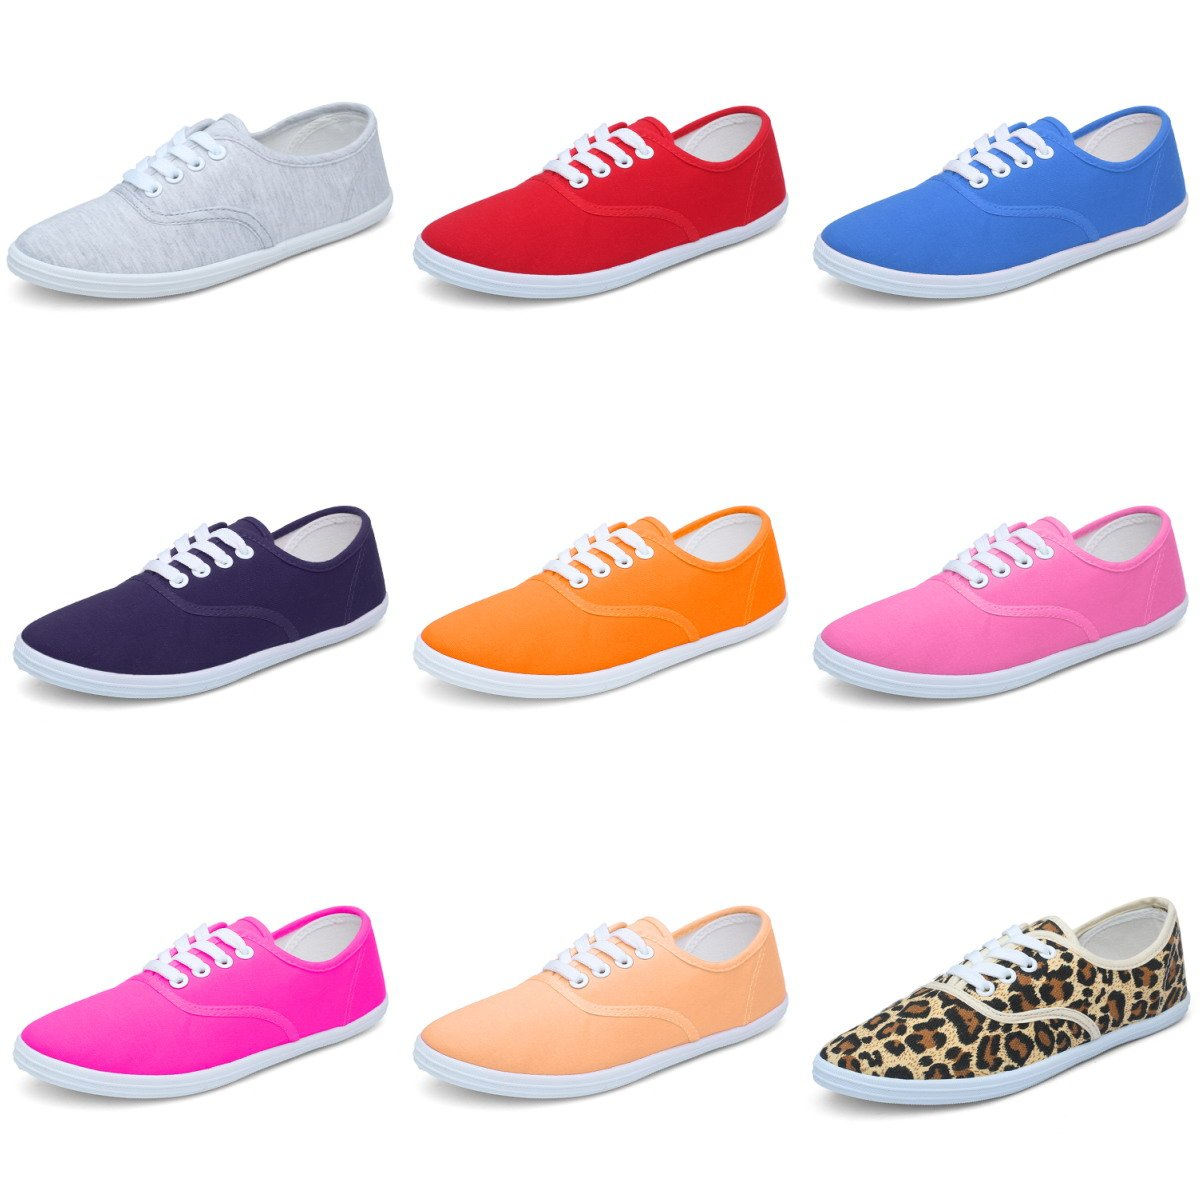 CIOR Women Lace up Canvas Shoes Casual Round Tote Classic Sneakers Original Lightweight Soft,VFB01,F.Grey,36 by CIOR (Image #1)